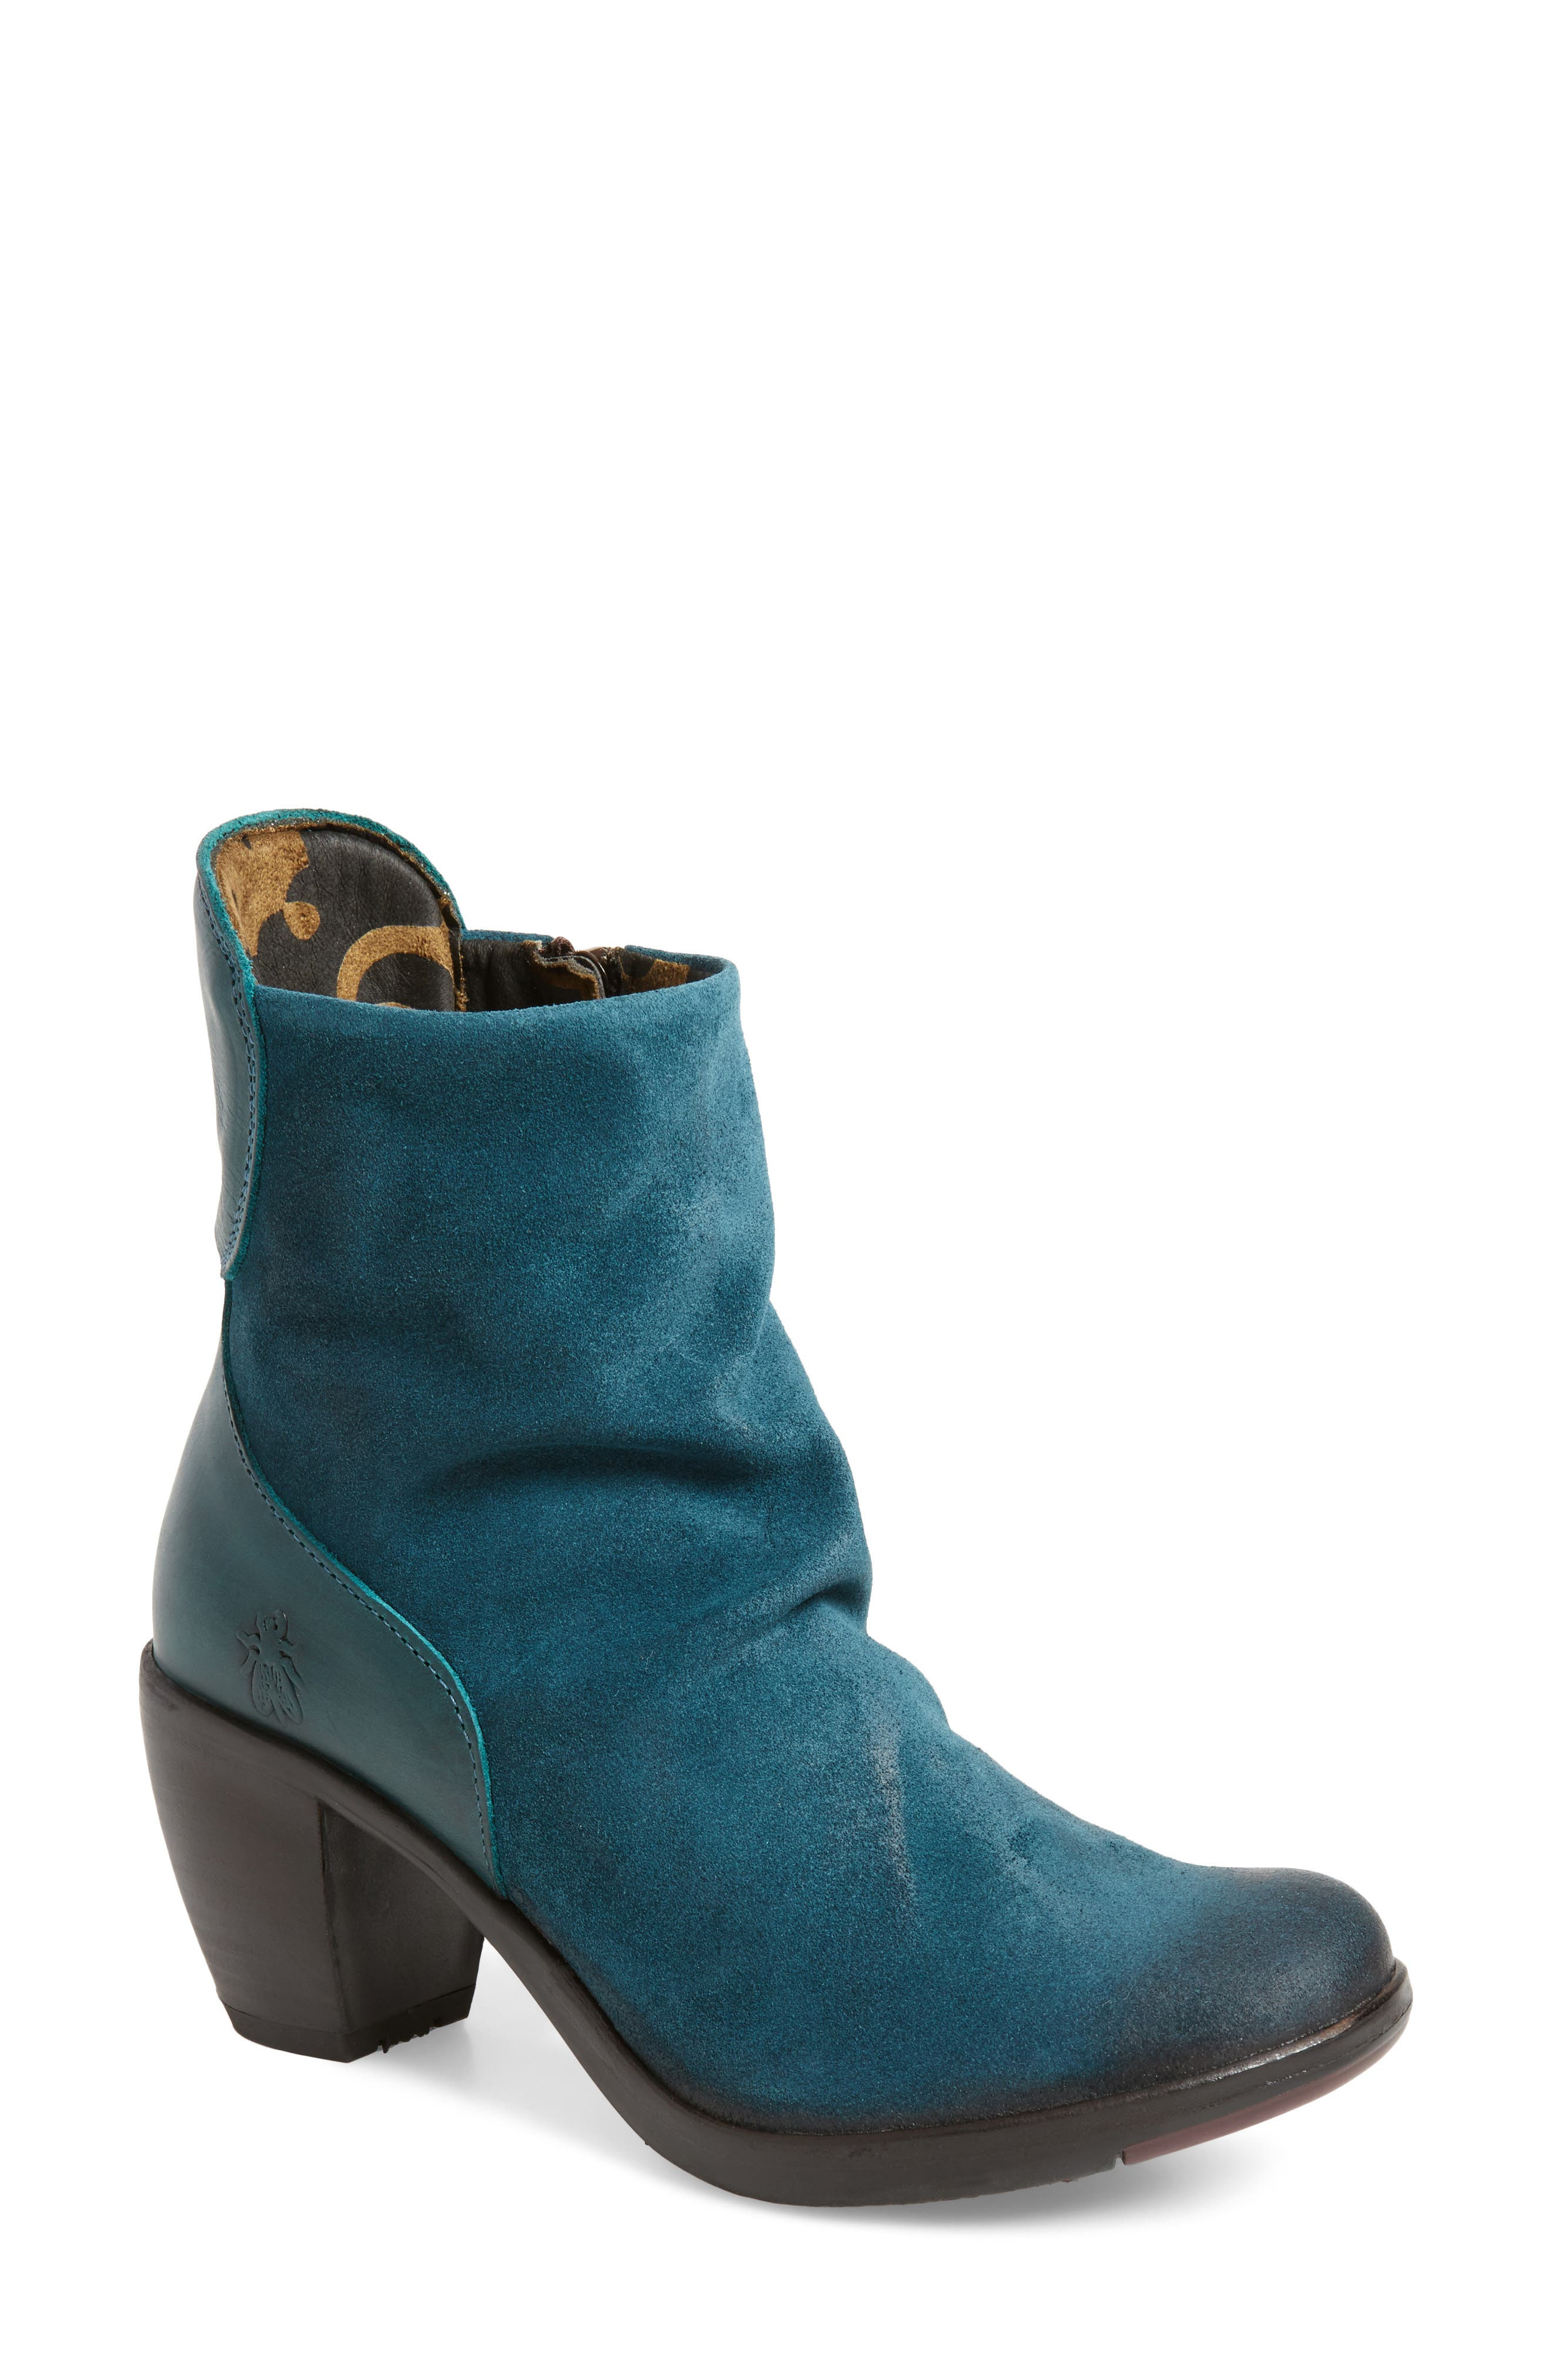 Fly London Hota Slouch Bootie - Blue